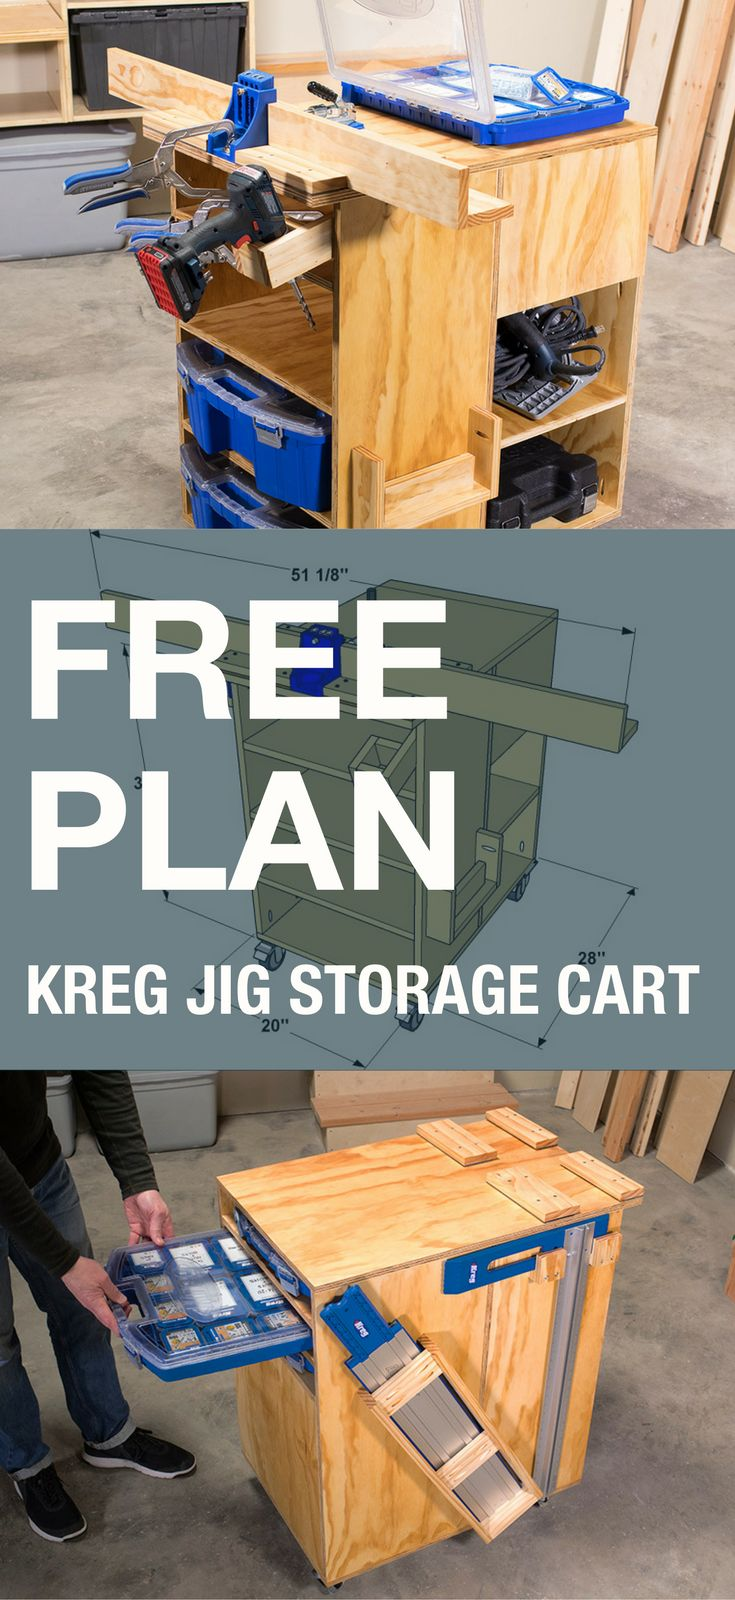 DIY Kreg Jig Work Center | Free printable plans with how-to steps, tools and materials list, cutting list and diagrams. | Organize your pocket-hole joinery with this rolling work center. It holds a Kreg Jig on top, and there's an optional fence system for the Kreg Jig K4. Plus, it has a drill holster, optional holders for Kreg cutting accessories, and storage shelves that hold a System Organizer and Screw Organizers.